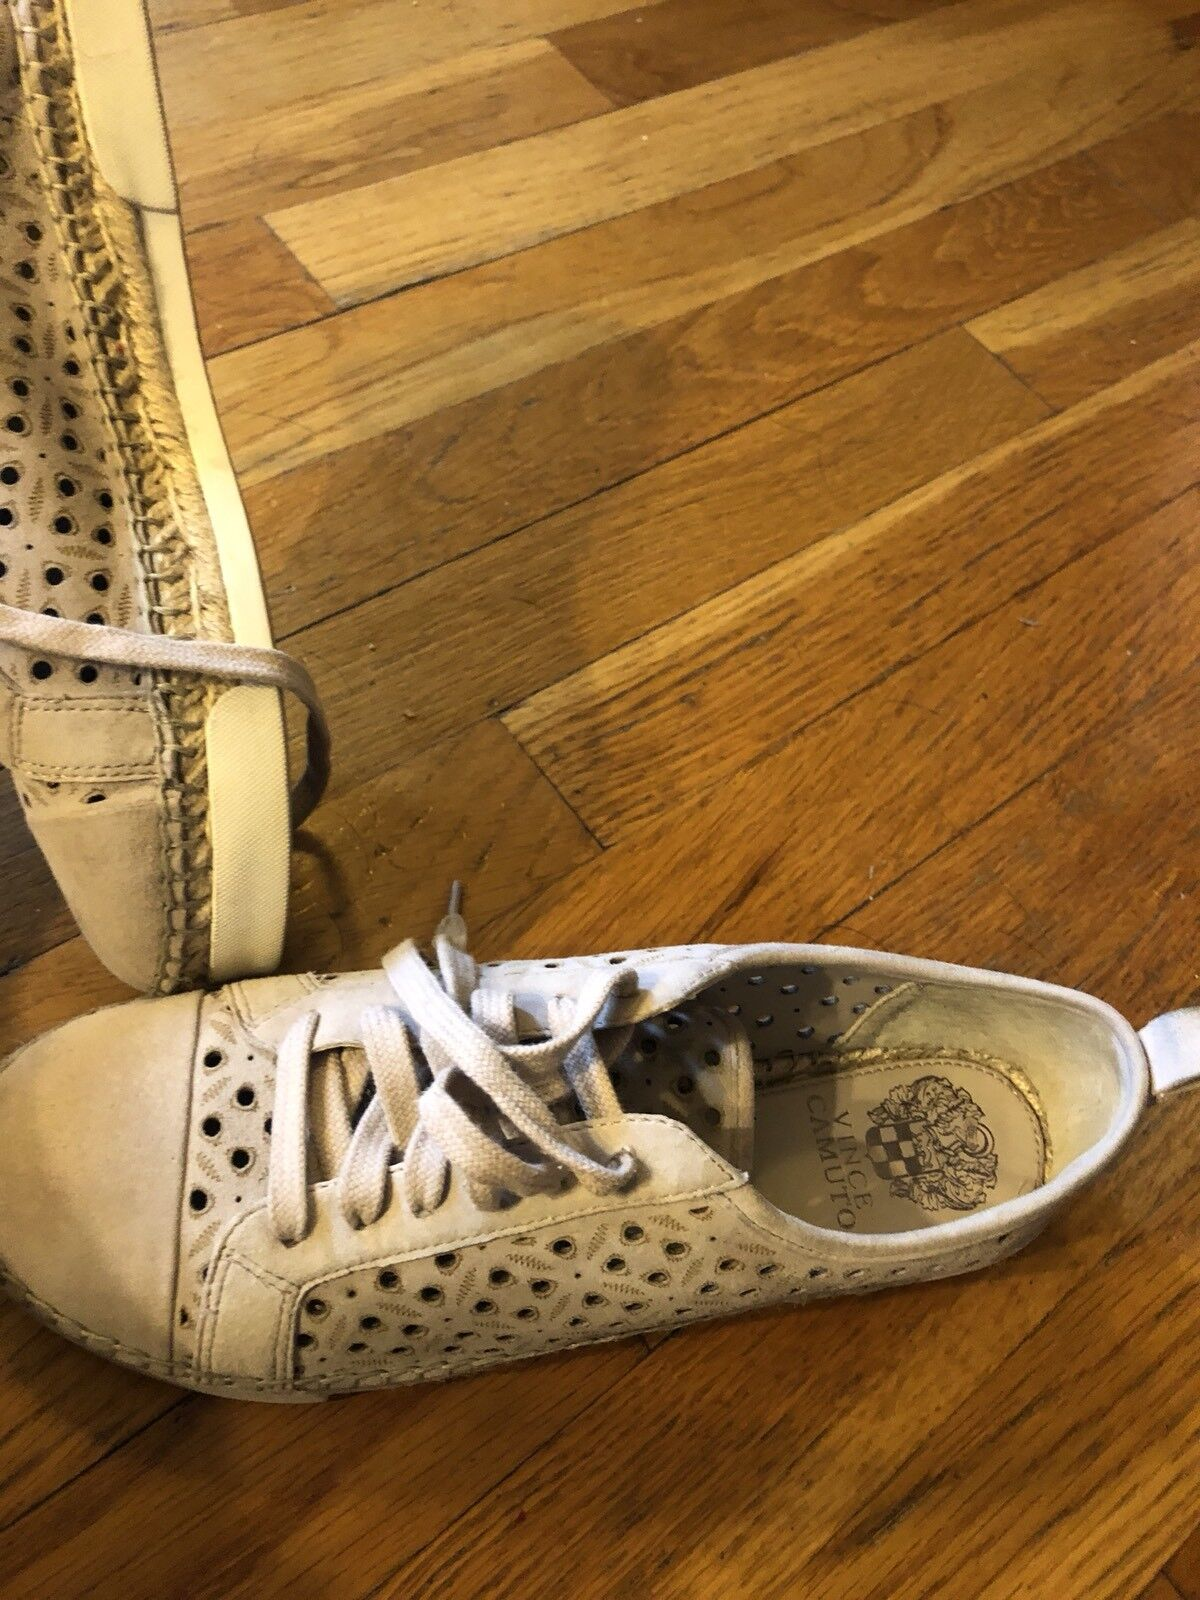 Vince Camuto VC THEERA Perforated Perforated Perforated Genuine Leather Rubber Sole Lace Up Sz 10 330247